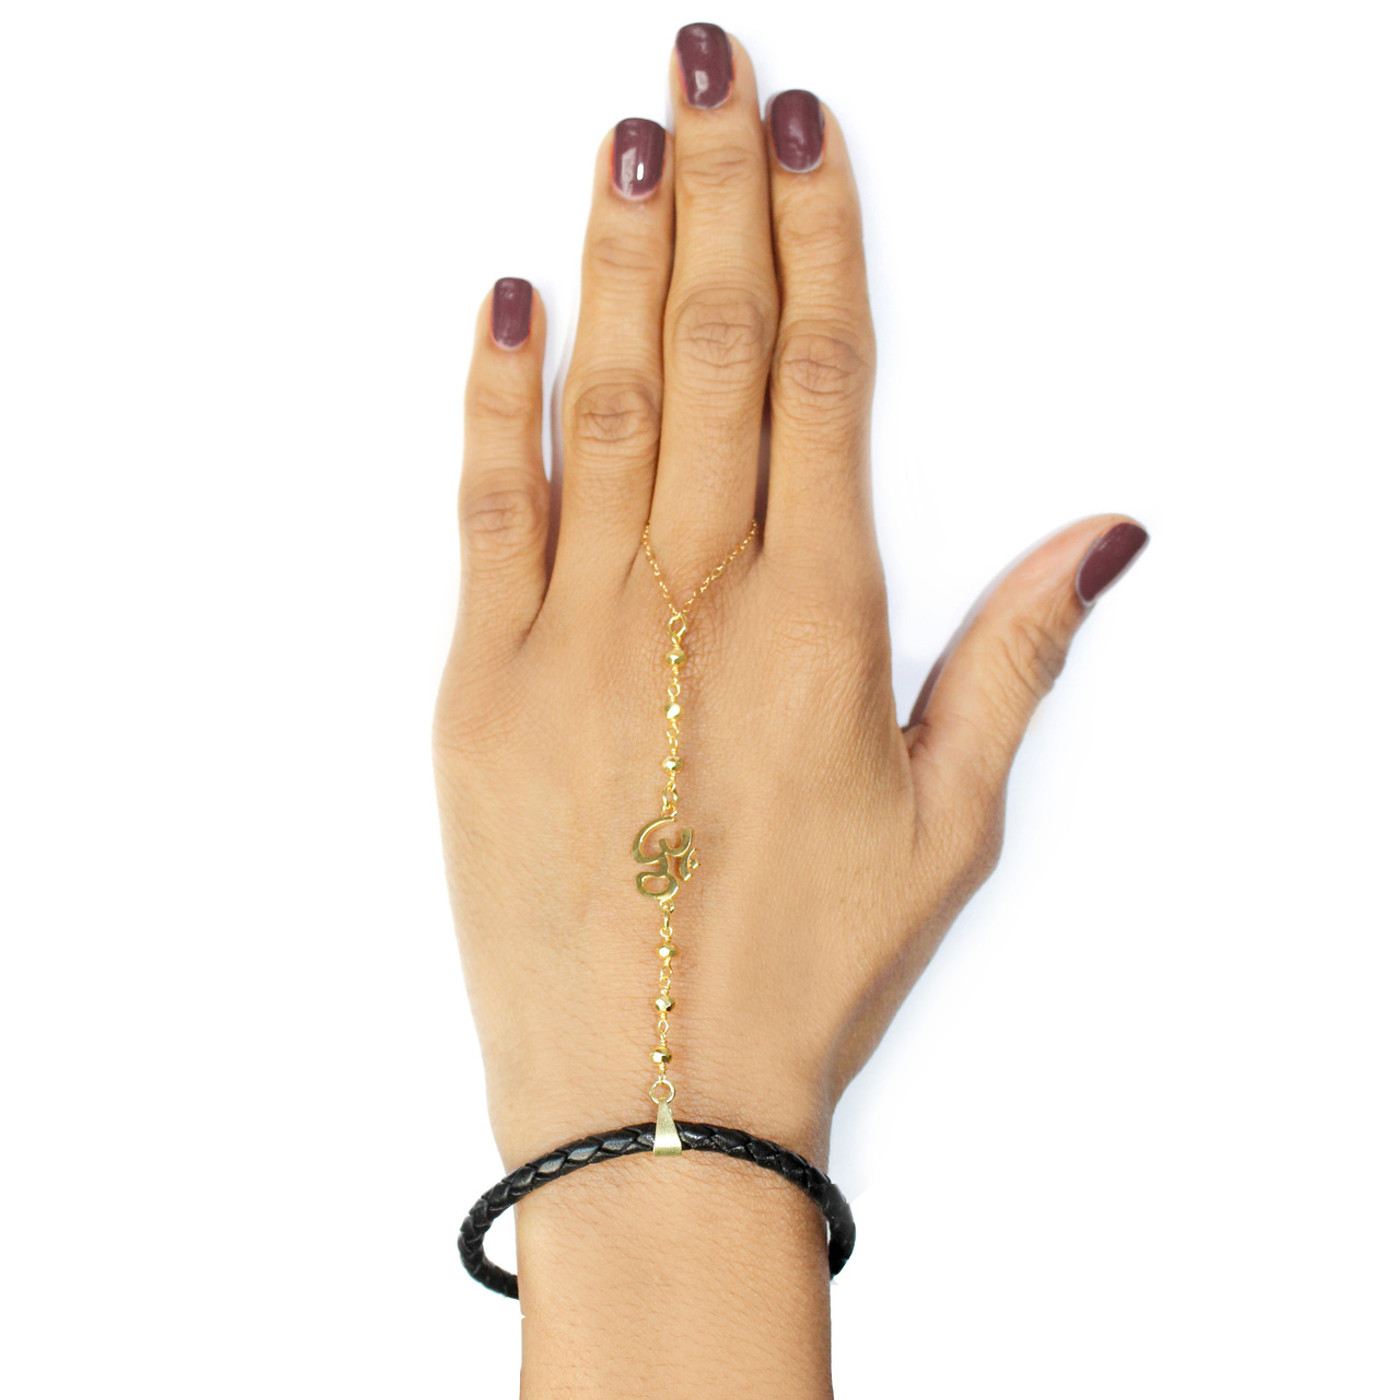 18K Gold over Sterling Silver Hand Chain: The OM